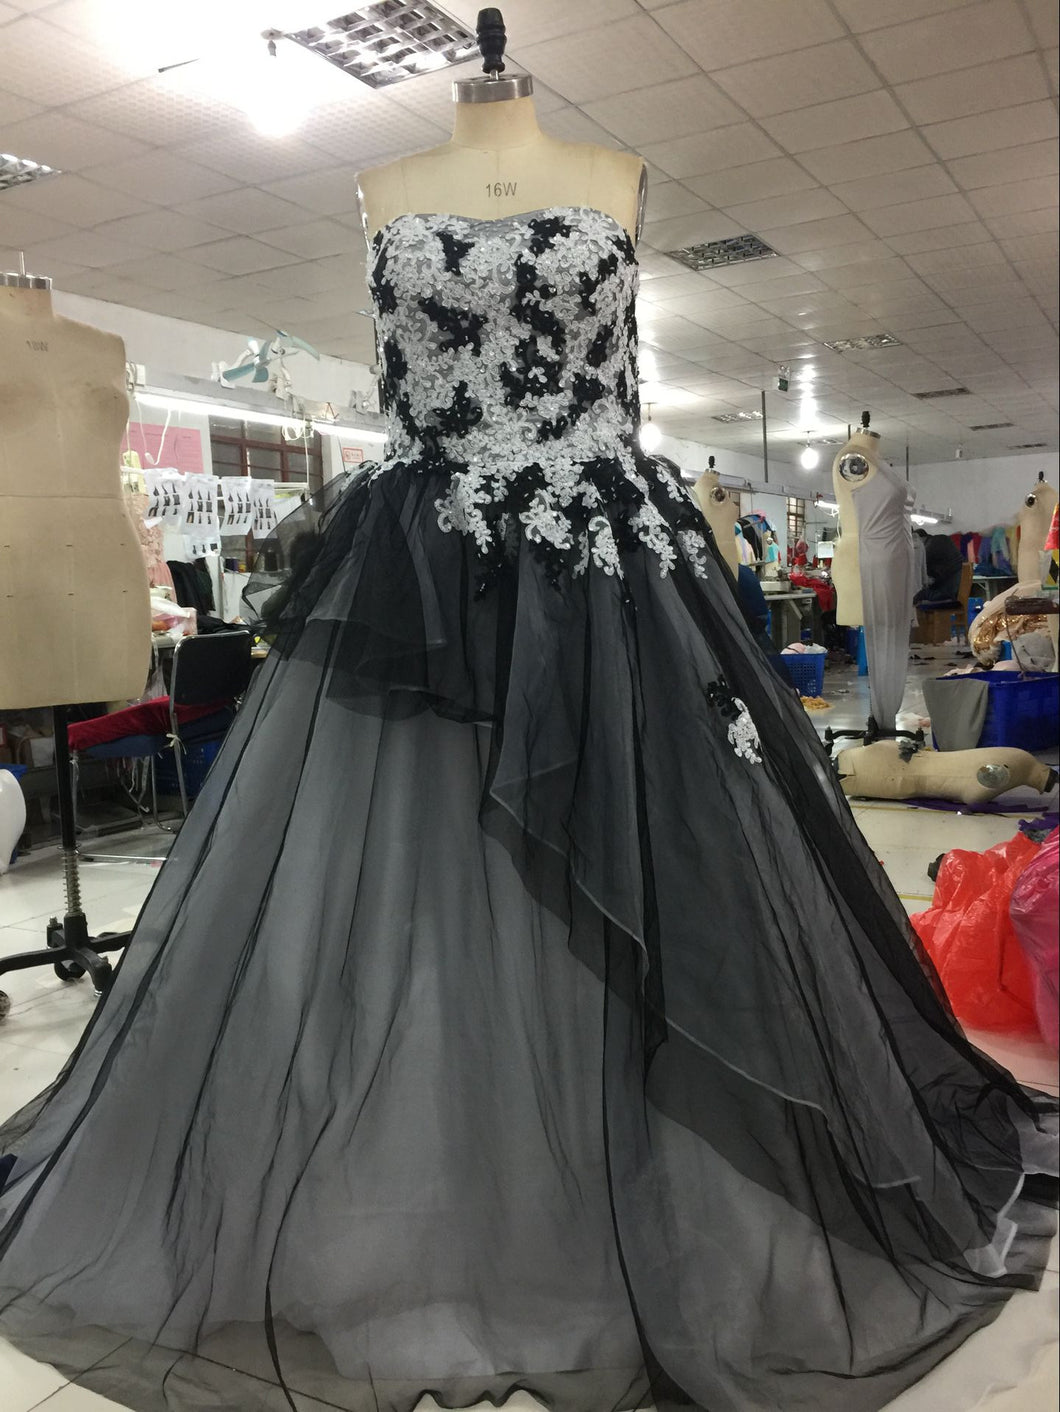 Strapless black ball gowns from Darius Dresses